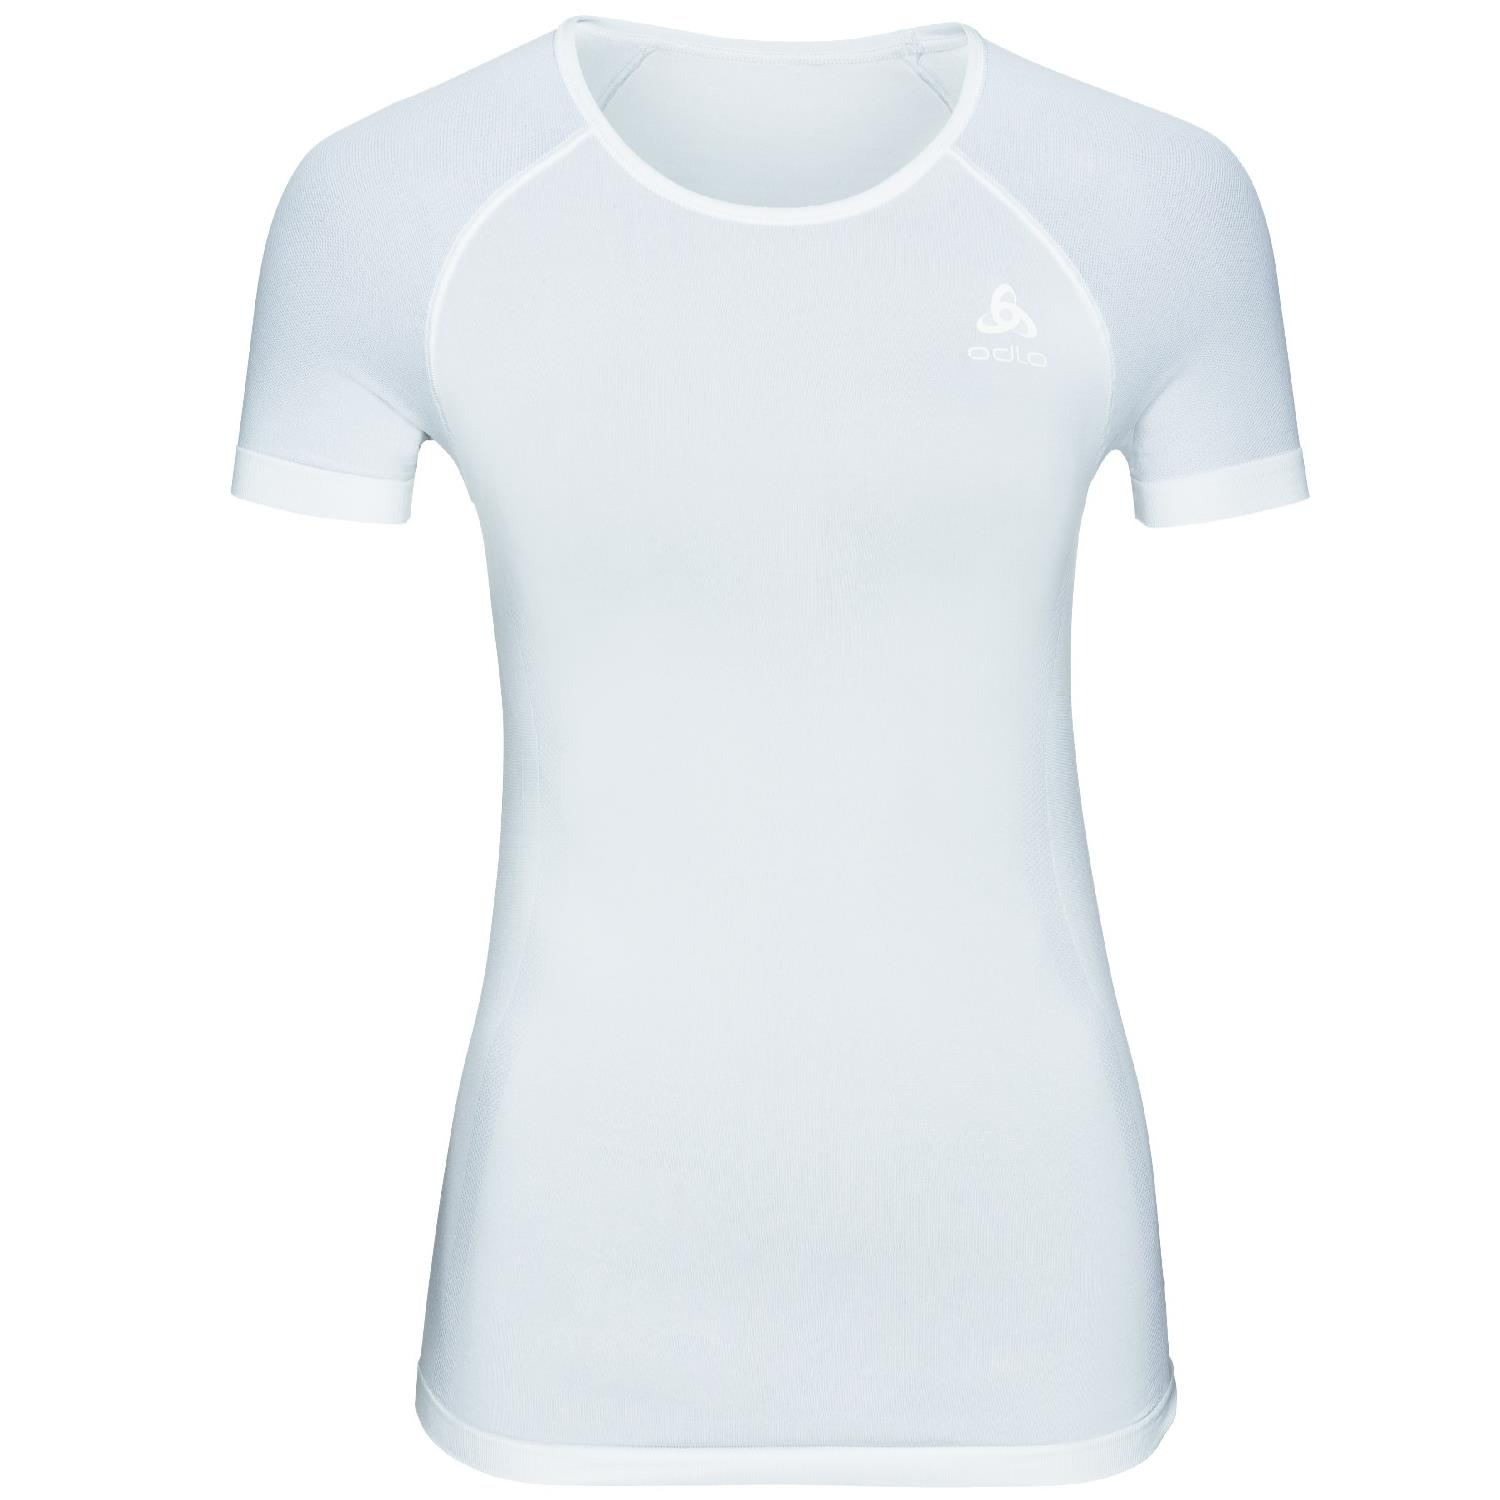 Odlo Performance X-Light SUW Top crew neck s/s Damen Funktionsshirt weiß Gr. M von Odlo